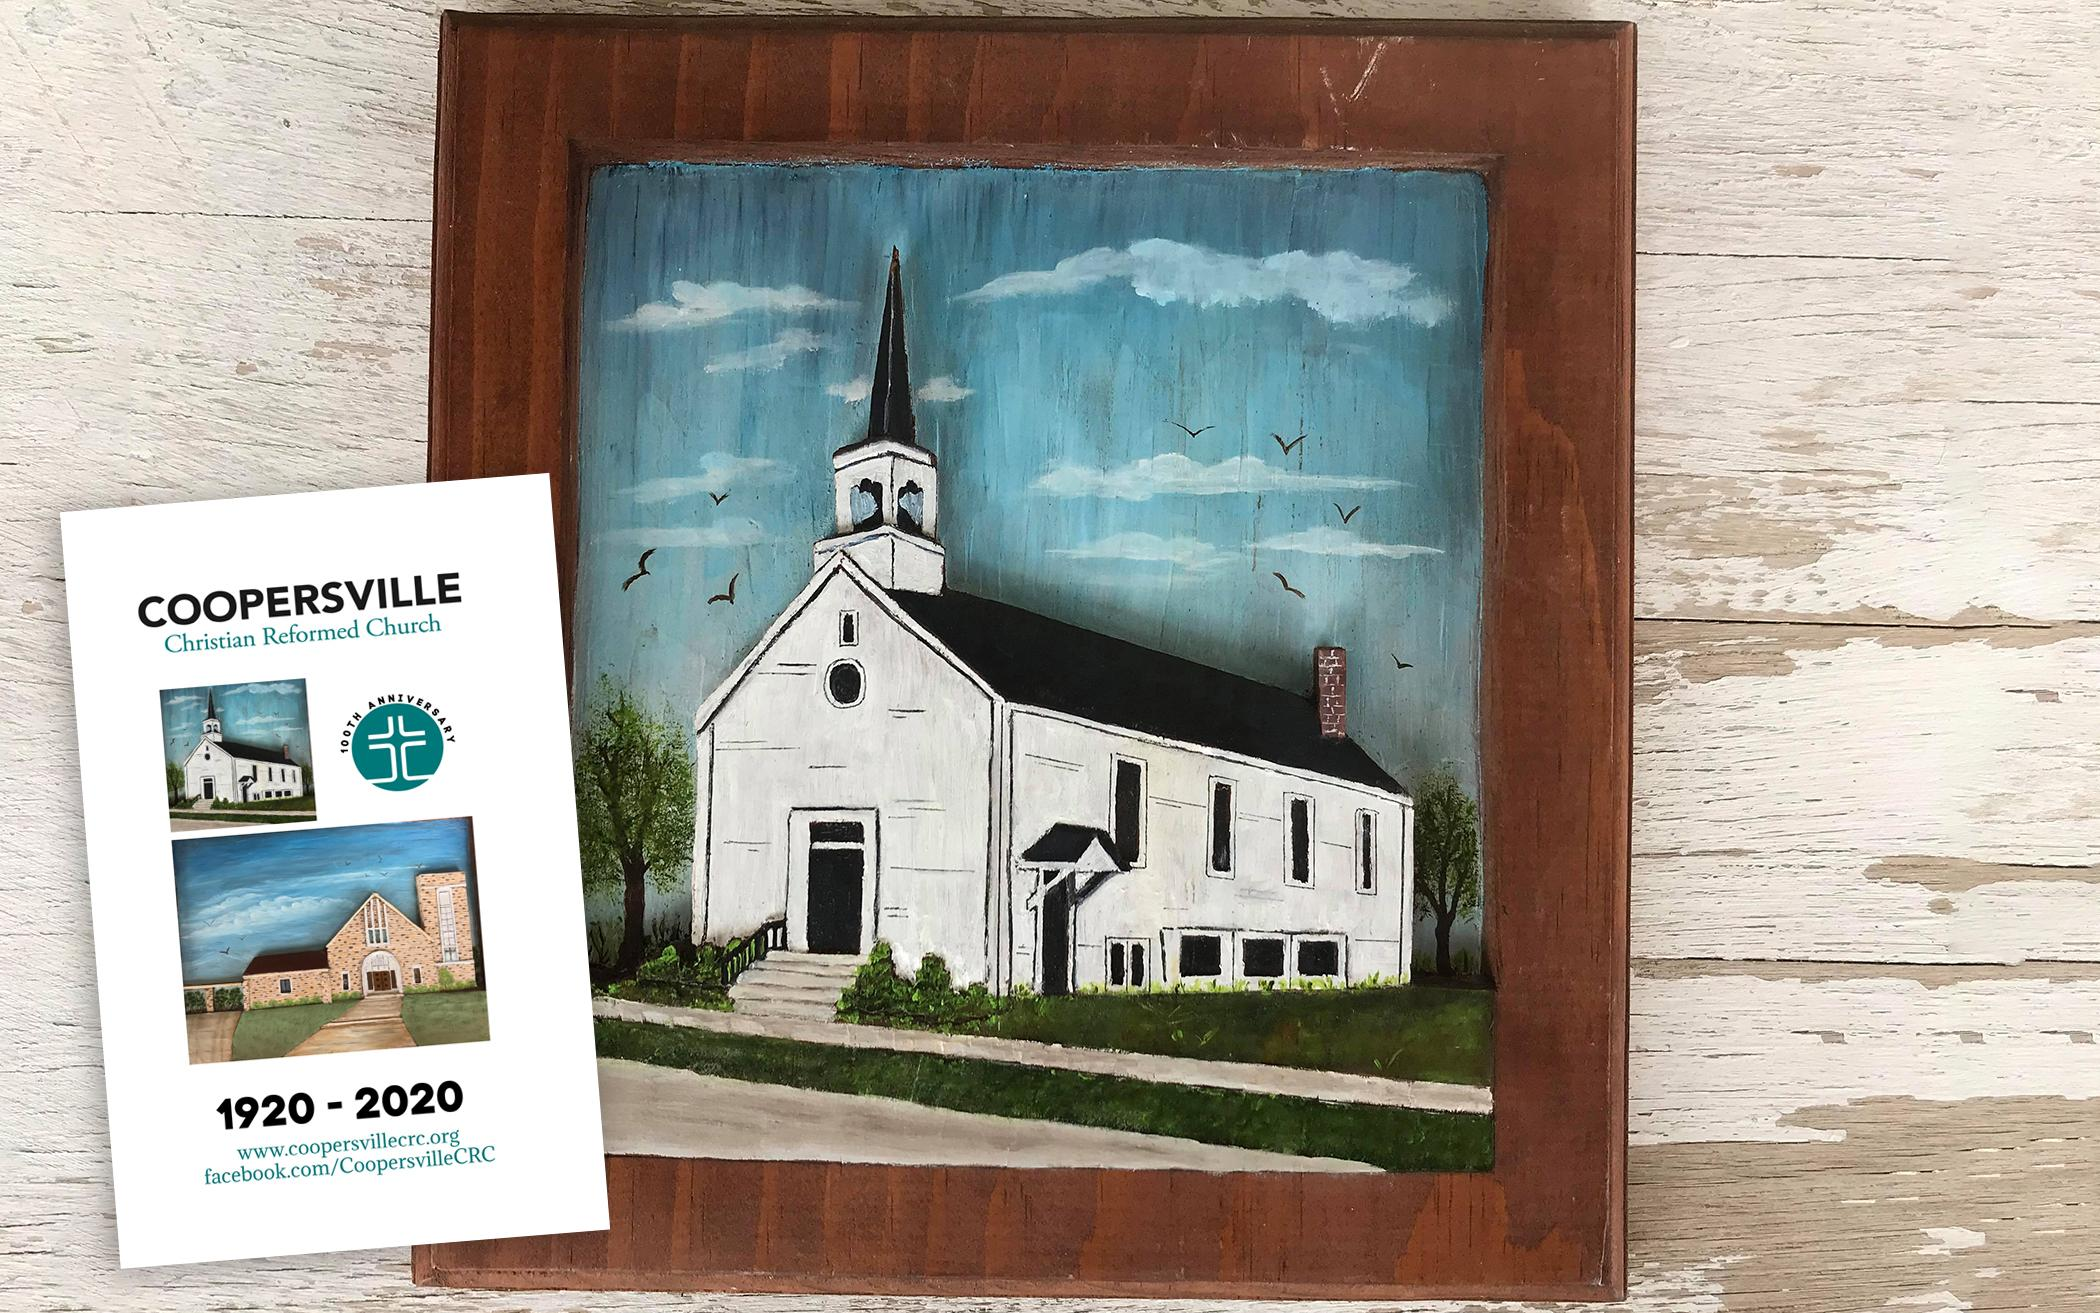 Coopersville, Mich., Church Turned 100 in 2020